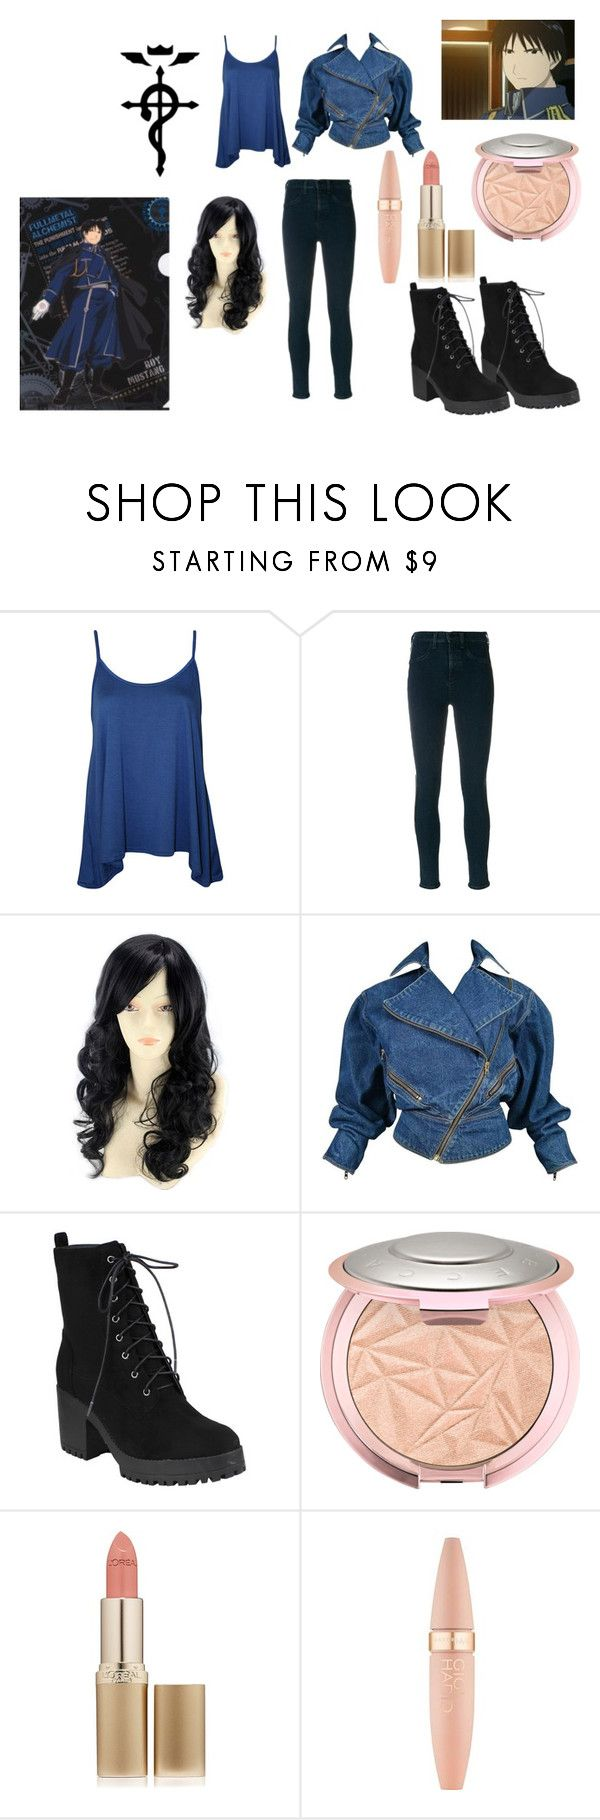 """Roy Mustang"" by neptune10089 ❤ liked on Polyvore featuring WearAll, rag & bone/JEAN, WithChic, Alaïa, L'Oréal Paris and Maybelline"